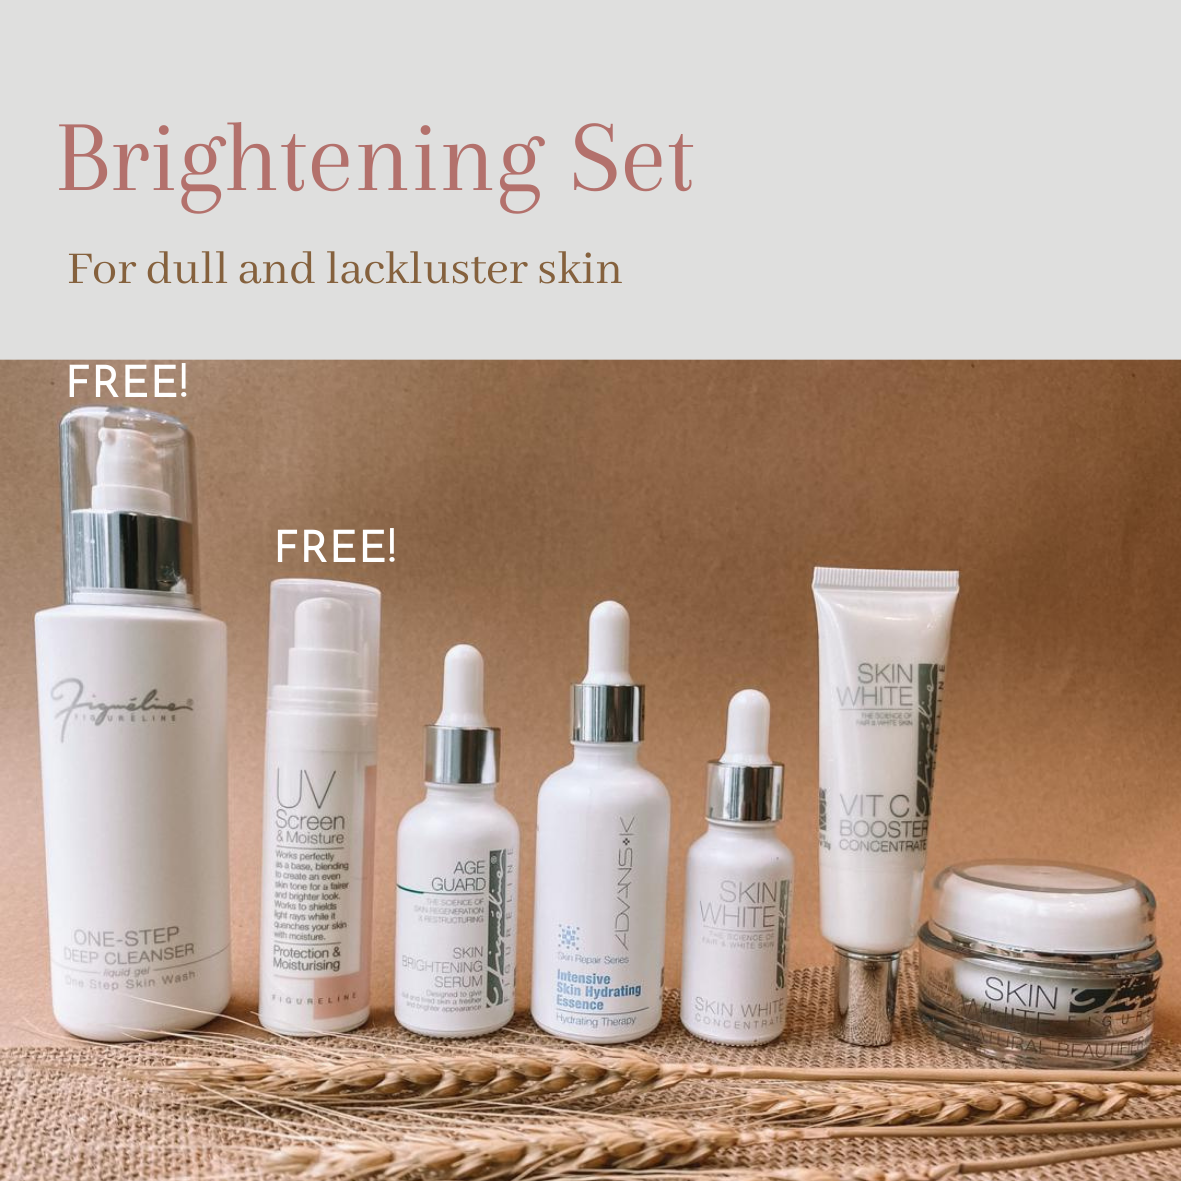 Brightening Set - For Dull & Lackluster Skin